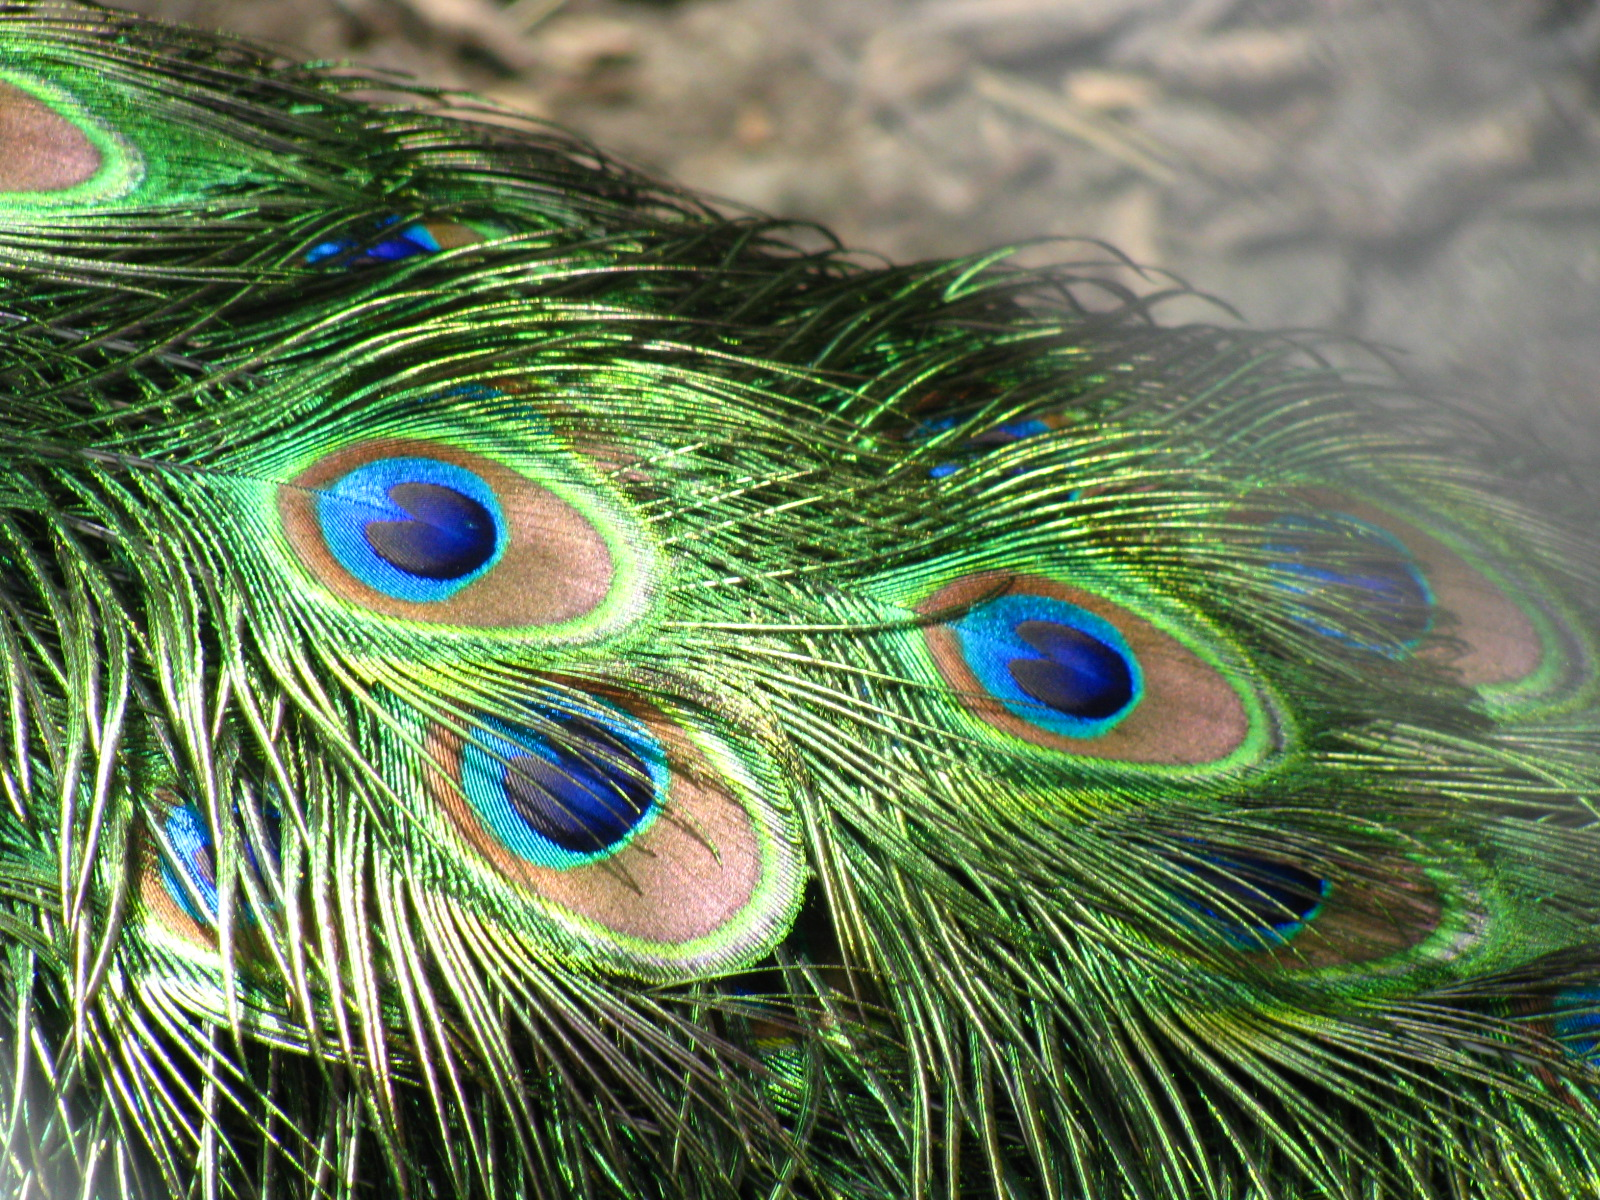 Peacock Feathers | WallPapers